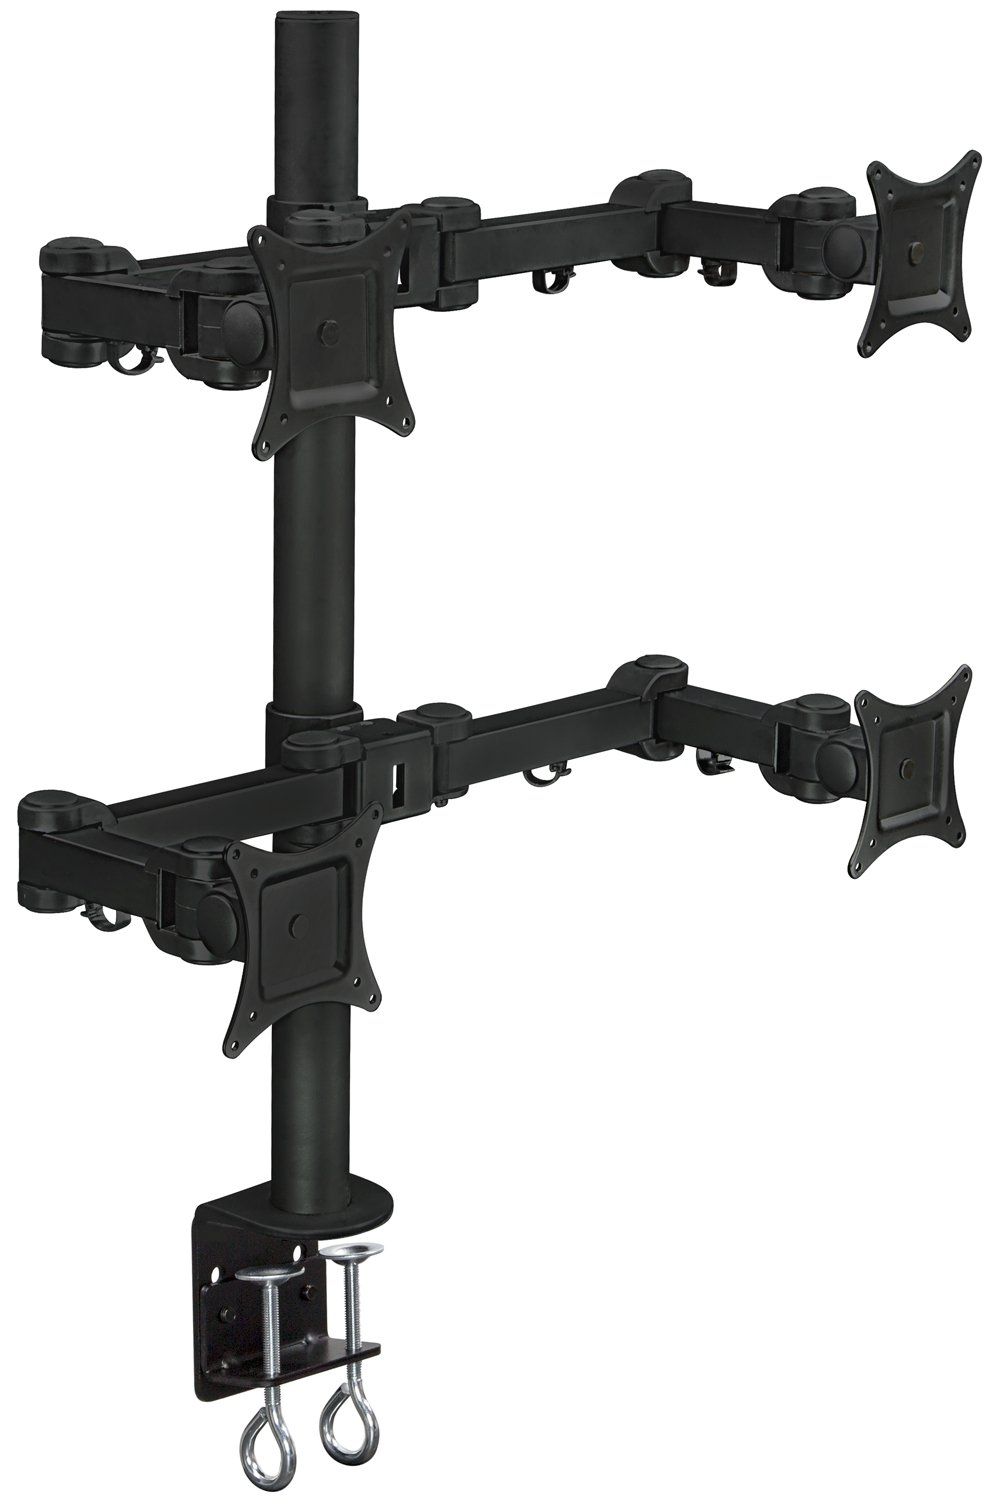 Mount-It! Quad Monitor Desk Mount for Desktop, 4 LCD Screens, Articulating Arm, Supports 20, 22, 23, 24, 25, 27 Inch, VESA 75x75 mm and 100x100 mm, 88 Lb Capacity, Clamp, Black (MI-754)